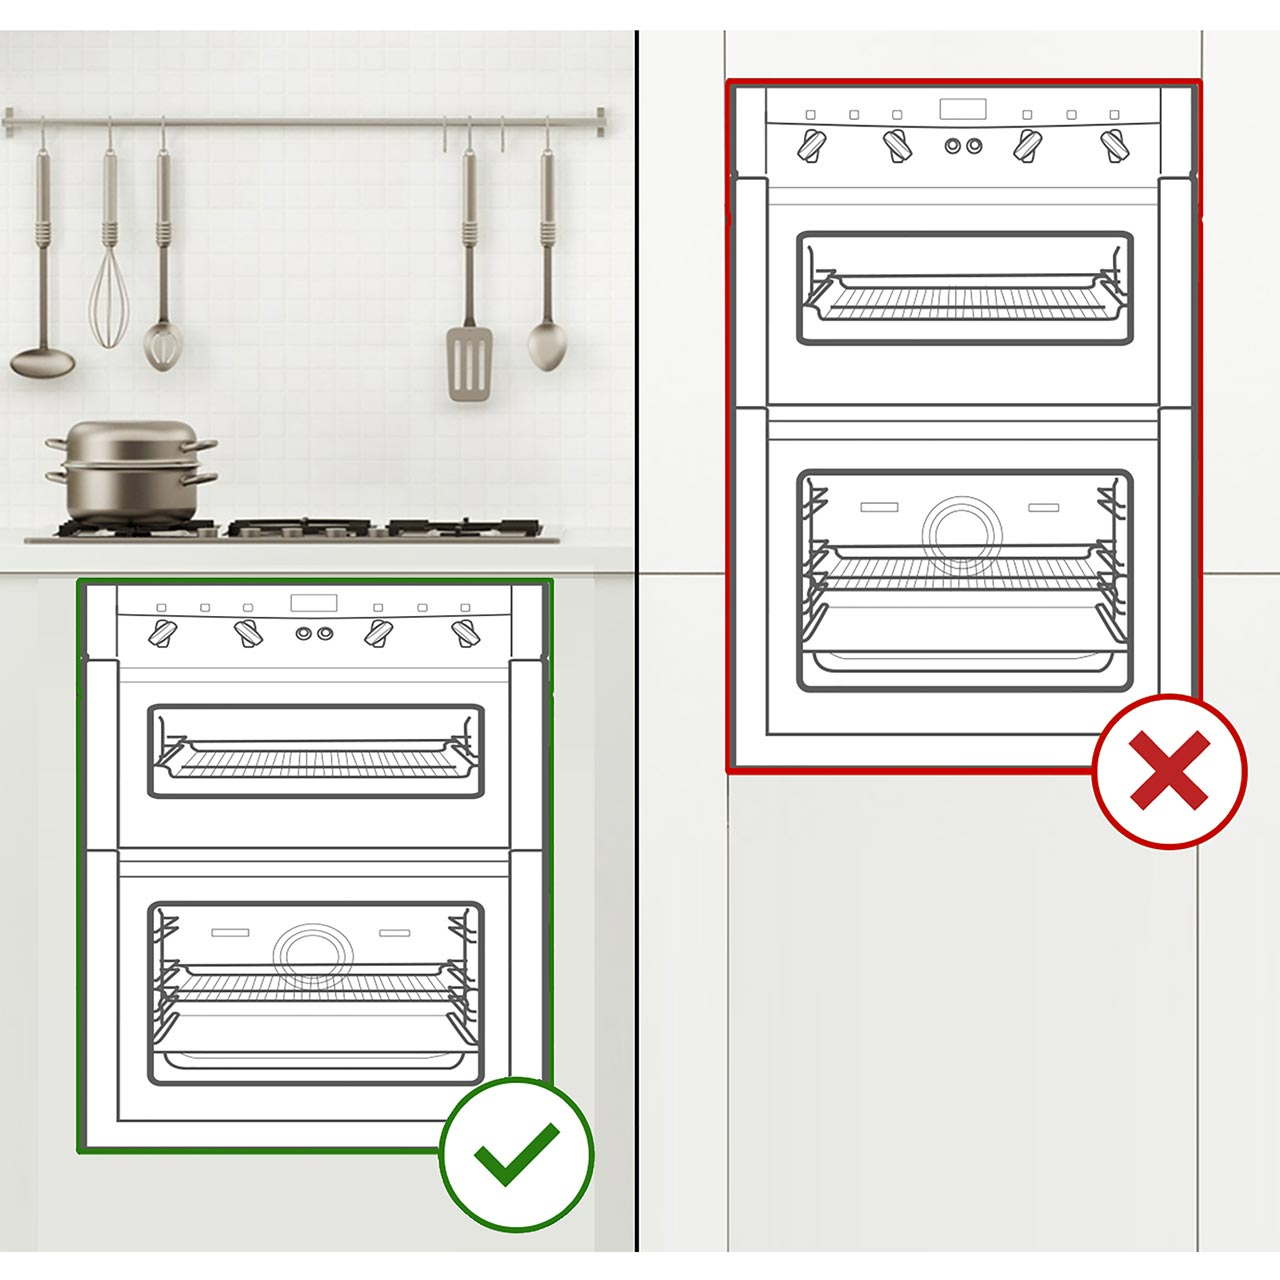 Hotpoint Double Oven Wiring Diagram